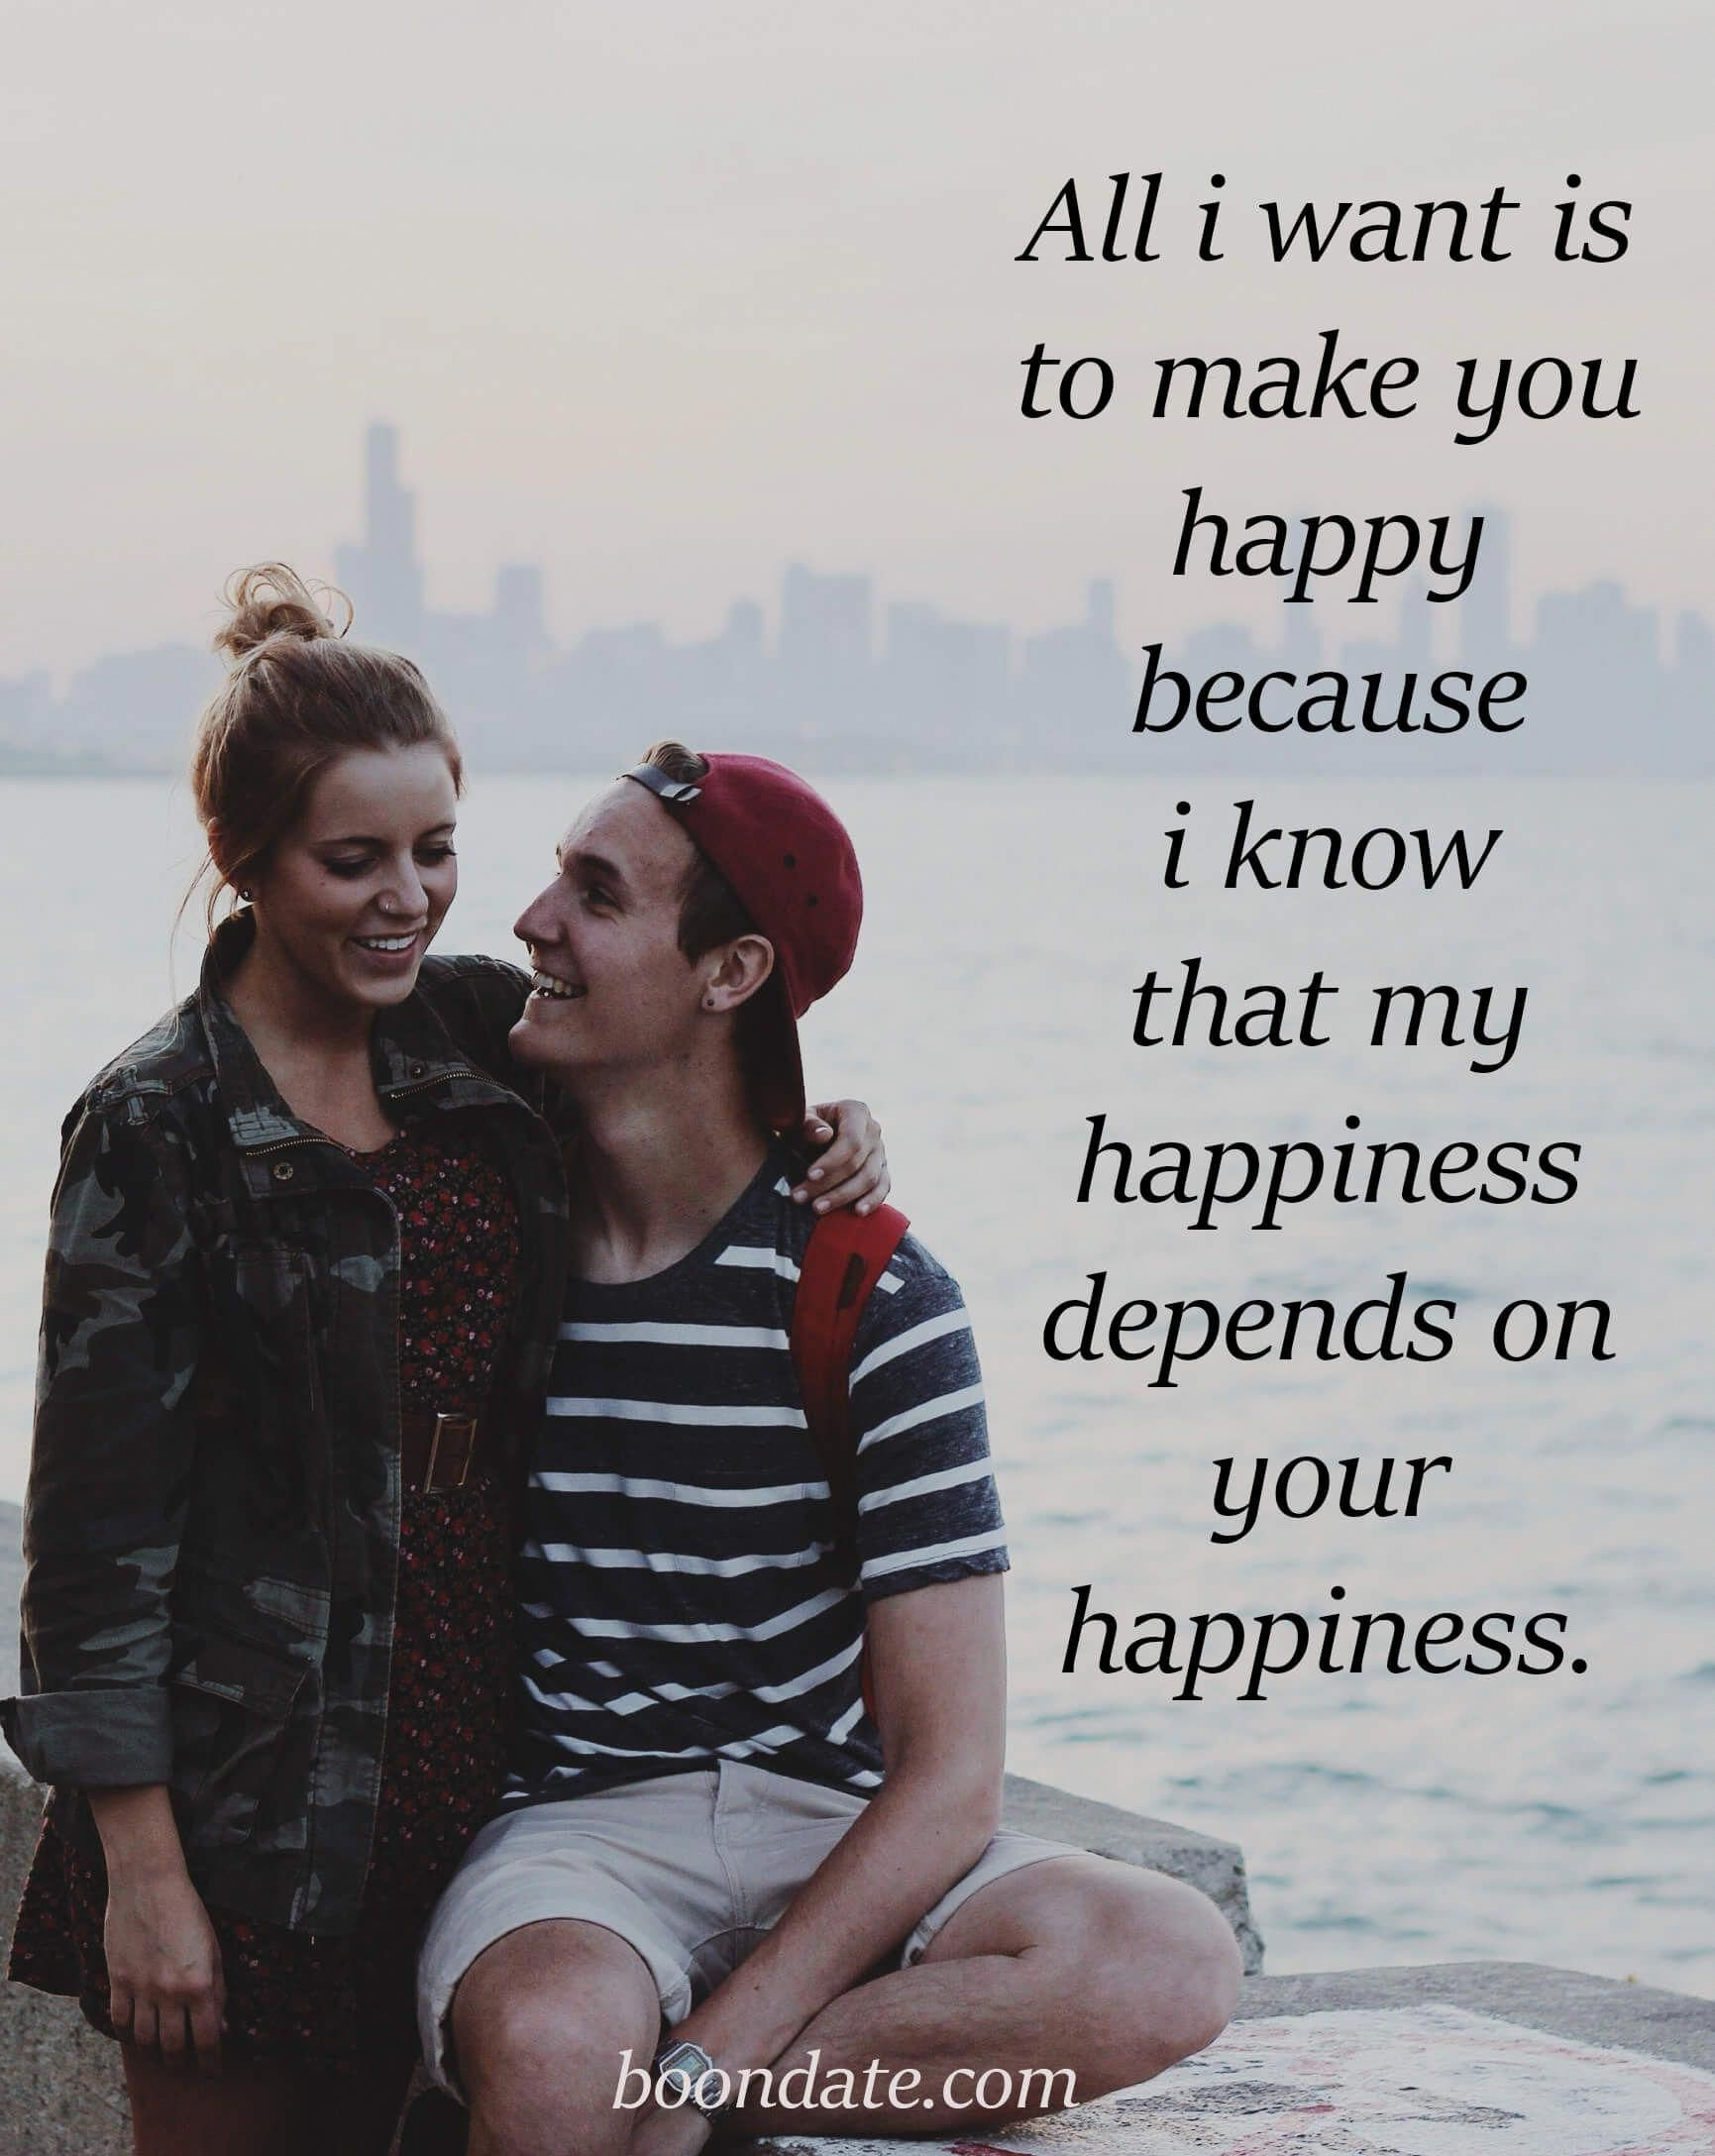 All I Want Is To Make You Happy Because I Know My Happiness Depends On Your Happines Most Beautiful Love Quotes Romantic Quotes Relationships Good Happy Quotes